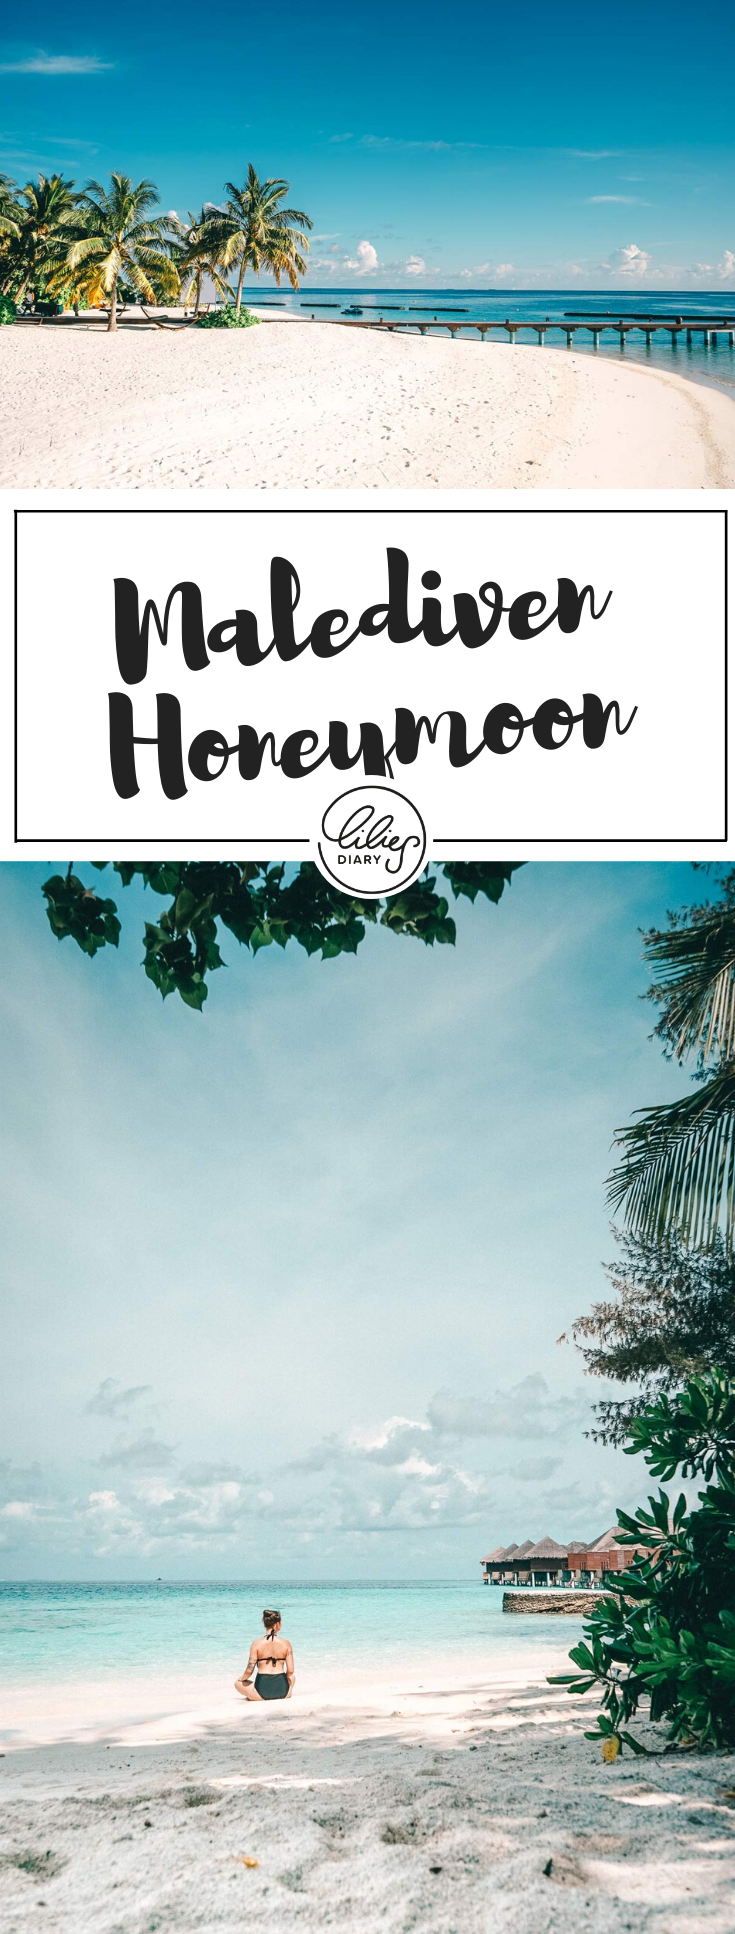 Malediven Honeymoon